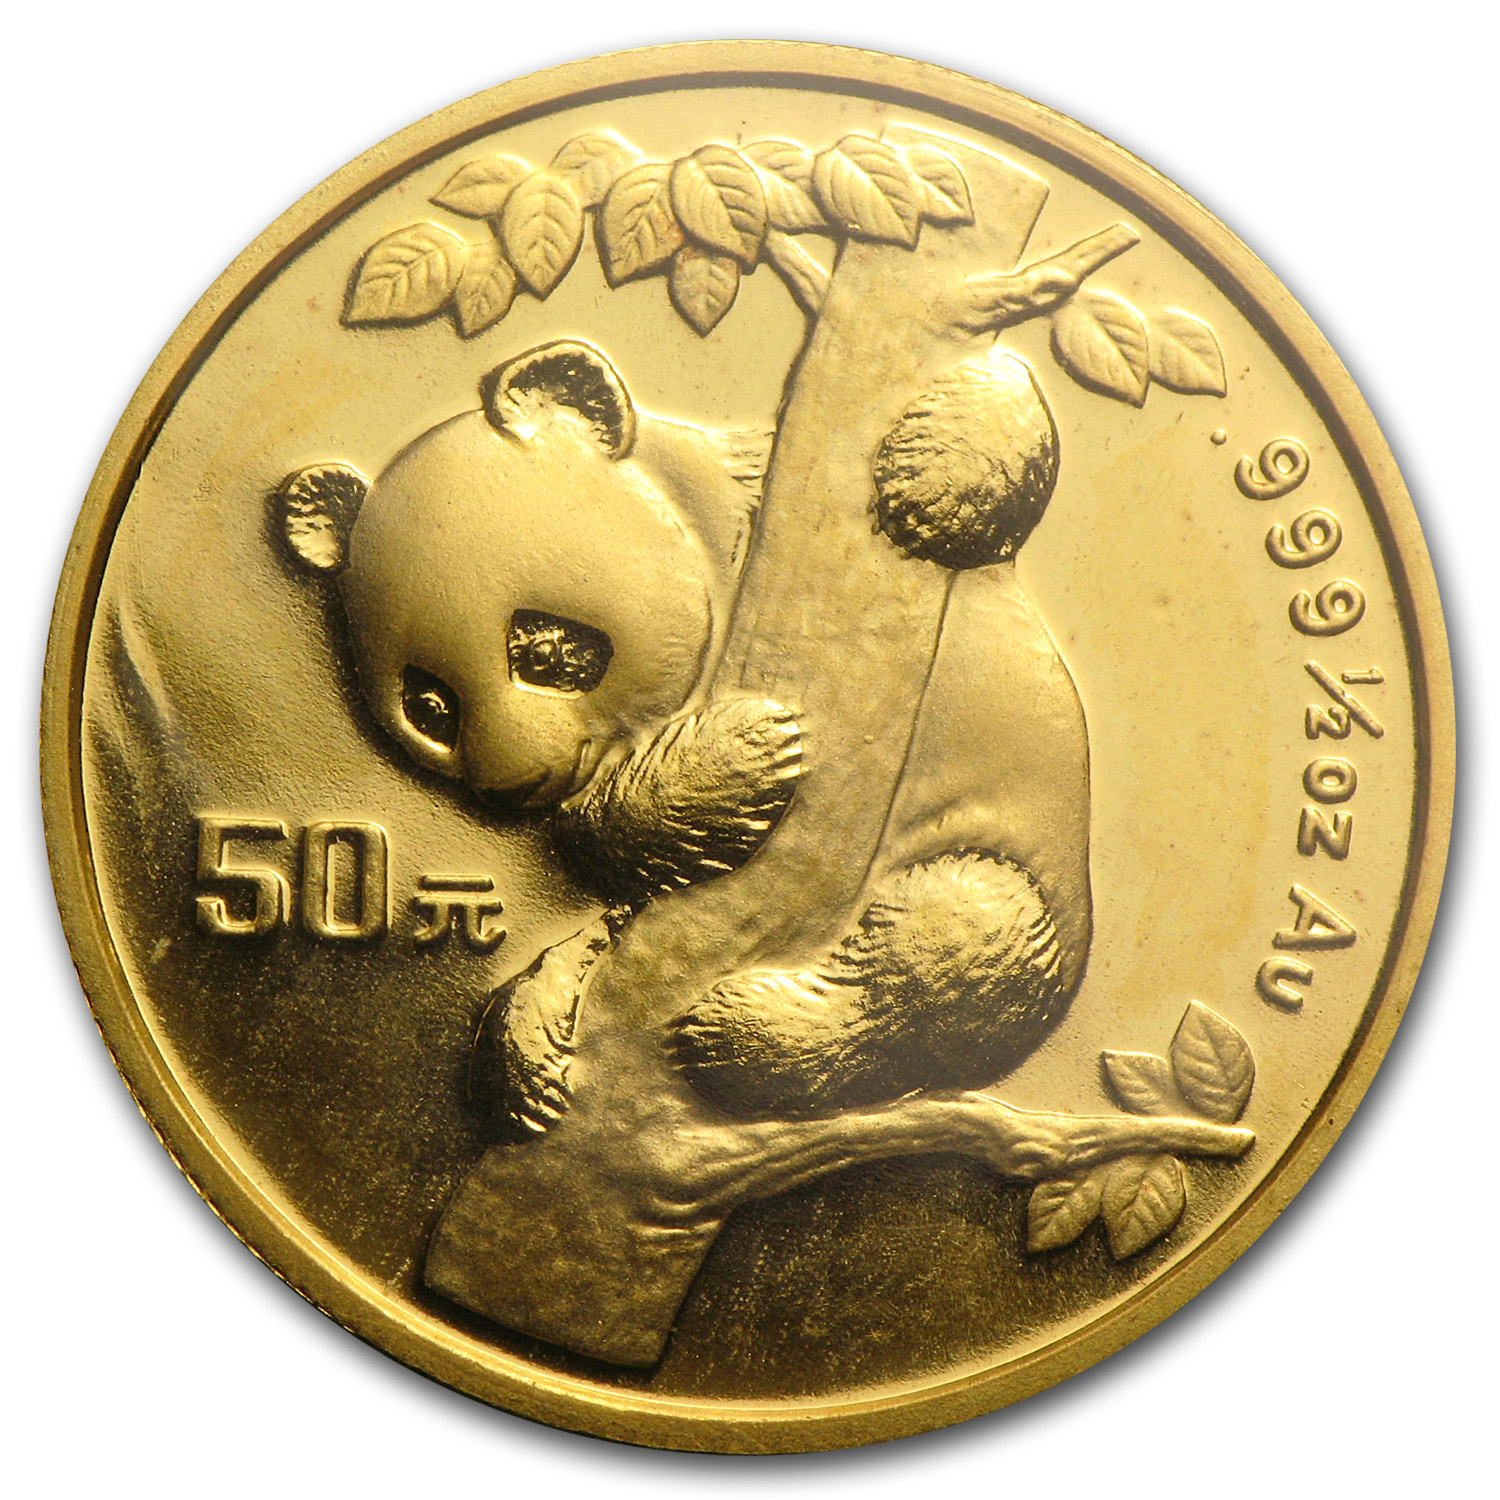 1996 China 1/2 oz Gold Panda Small Date BU (Sealed)